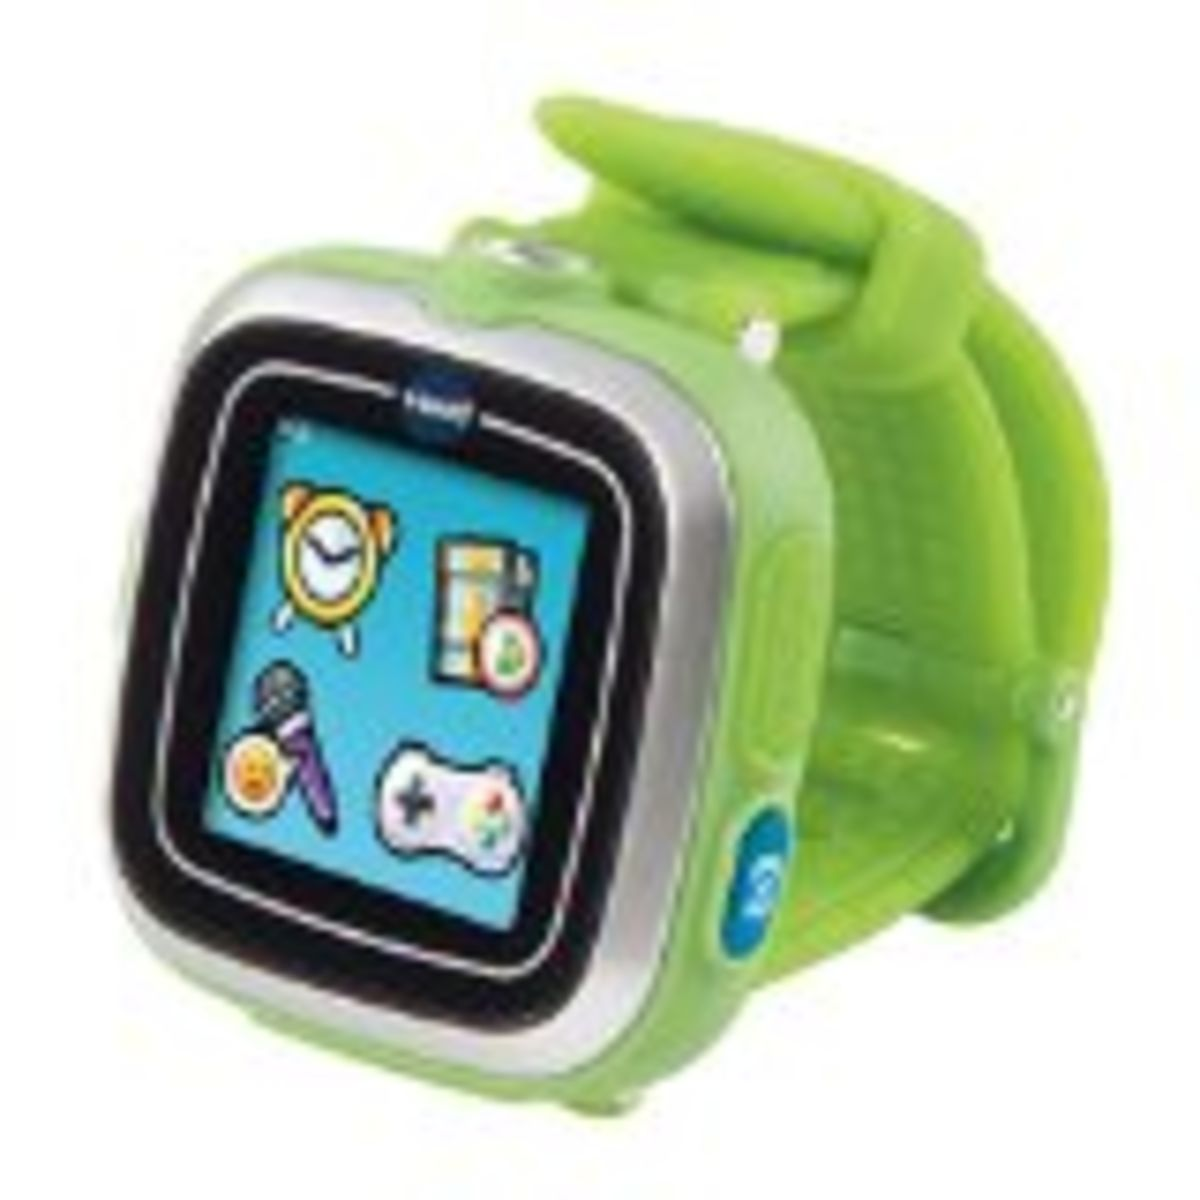 Headline for Best VTech Kidizoom Smartwatch Green Reviews 2014